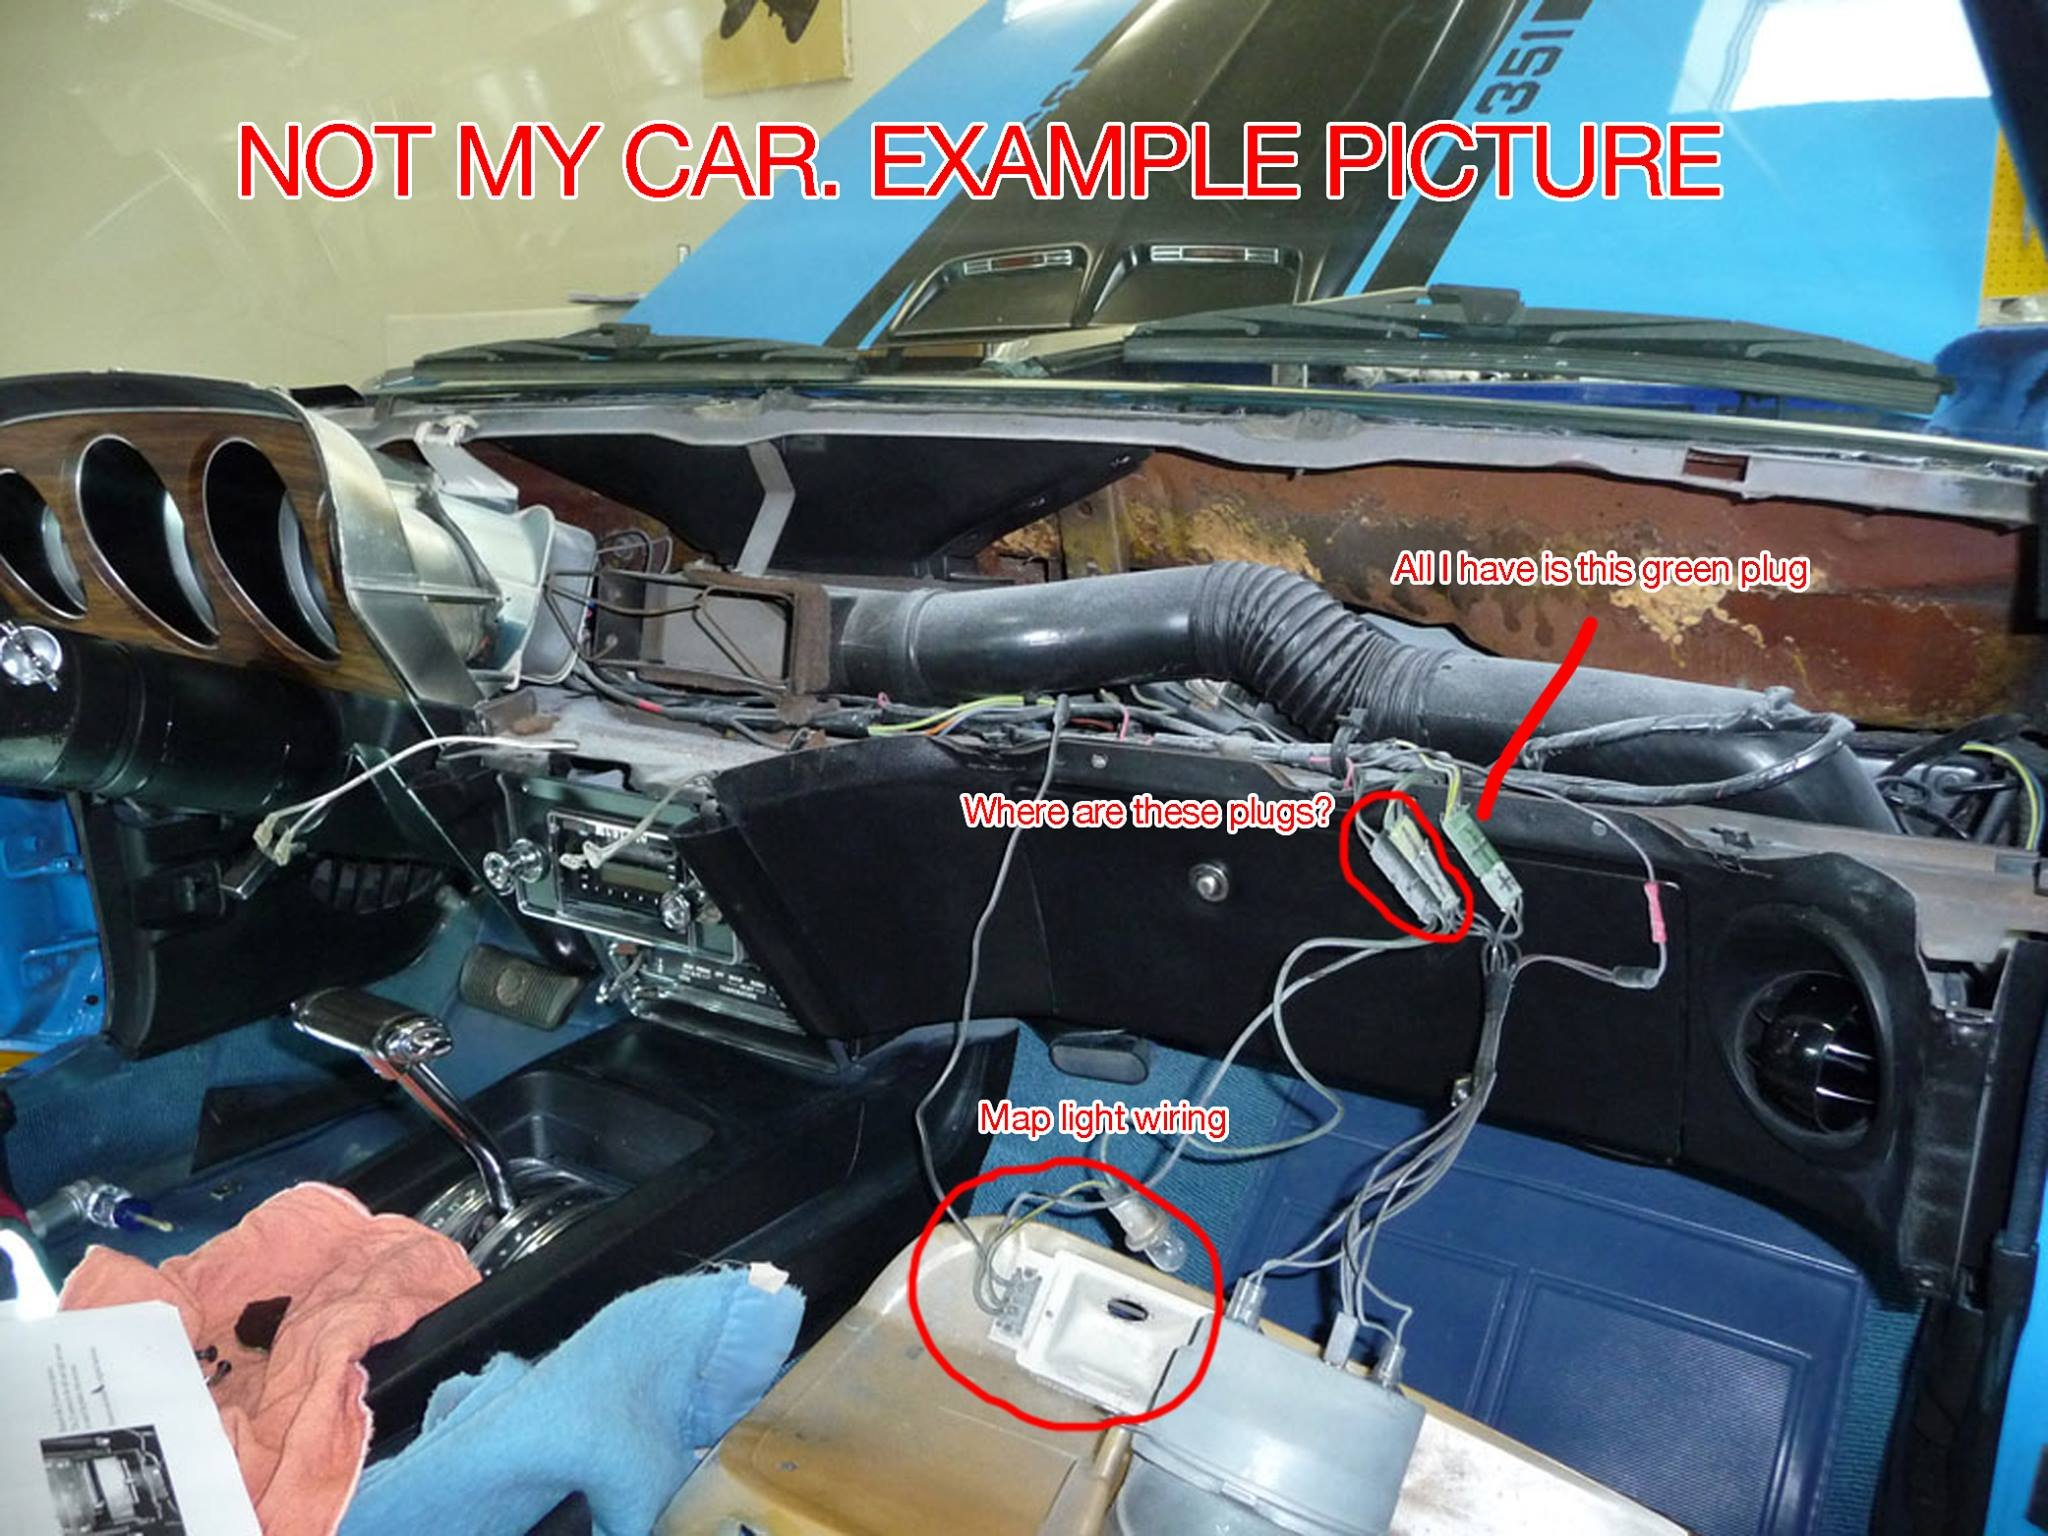 1970 Mach 1 Dash Wiring Need Help! Ford Mustang Forum 1970 Mustang Painless Wiring  Harness 1970 Mustang Wiring Harness